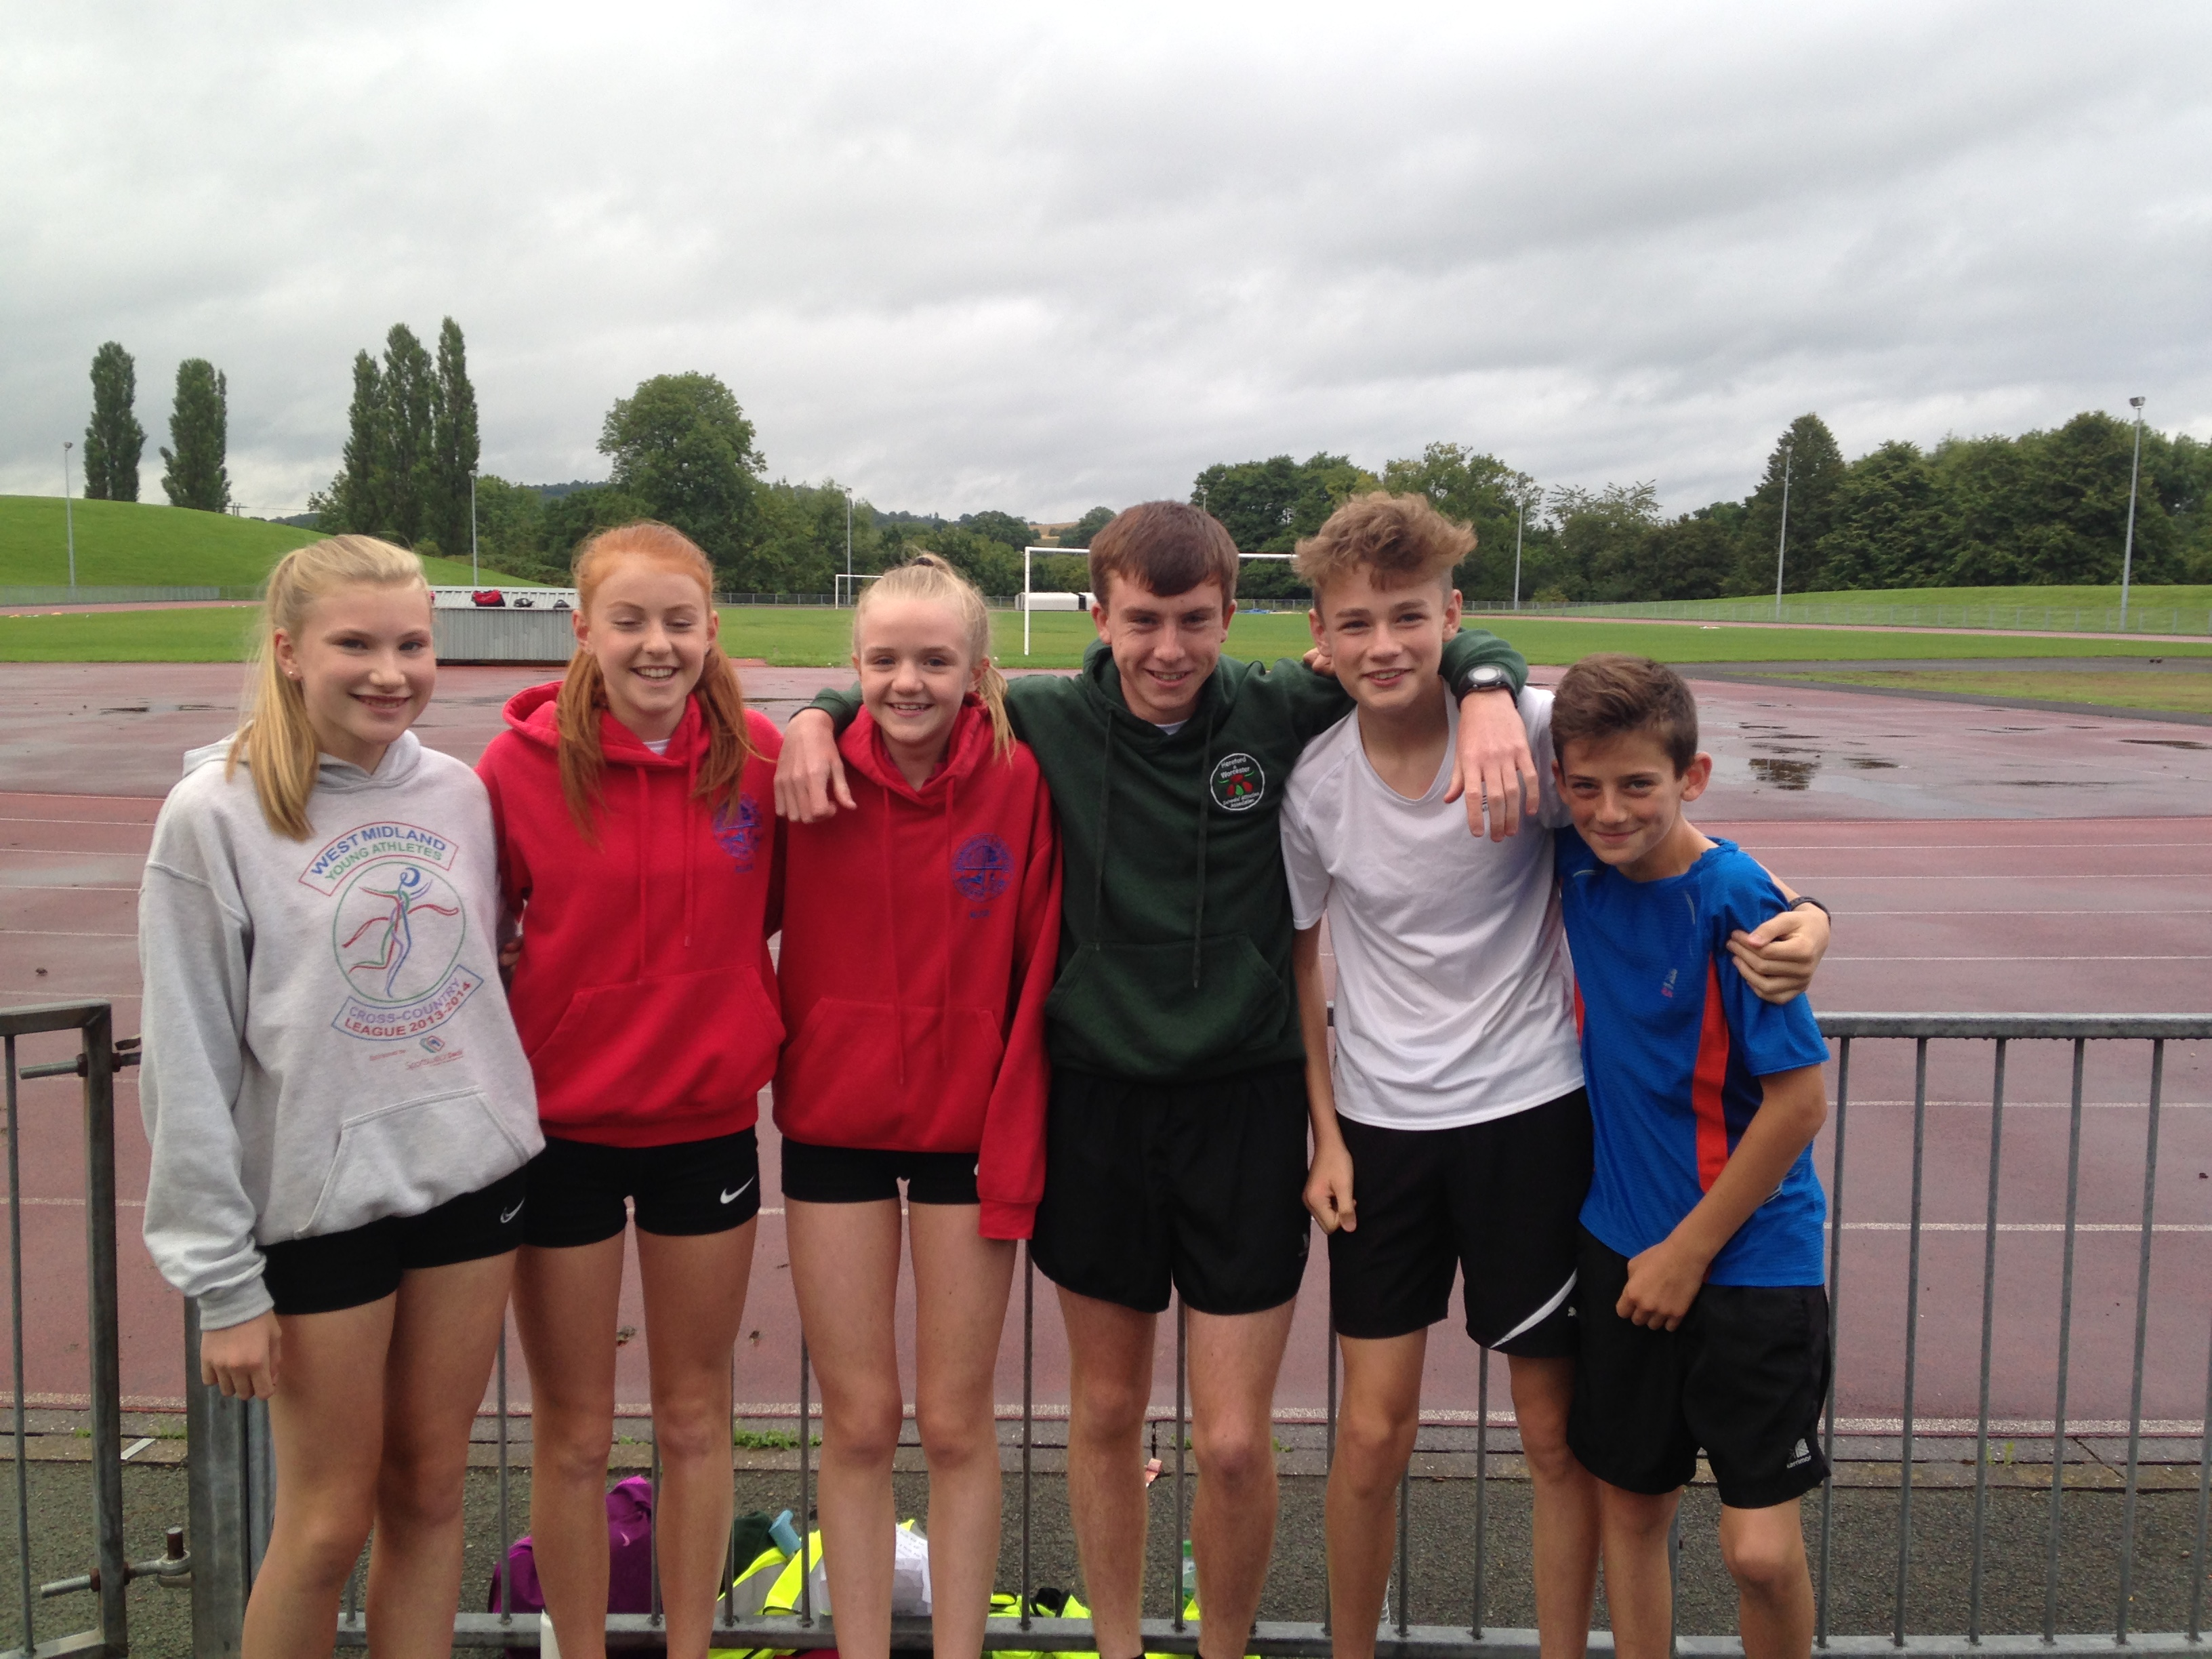 Ellie Moss, Ellen Bowen, Alice Battey, Conor Smith, Tom Deykin, Josh Robins.